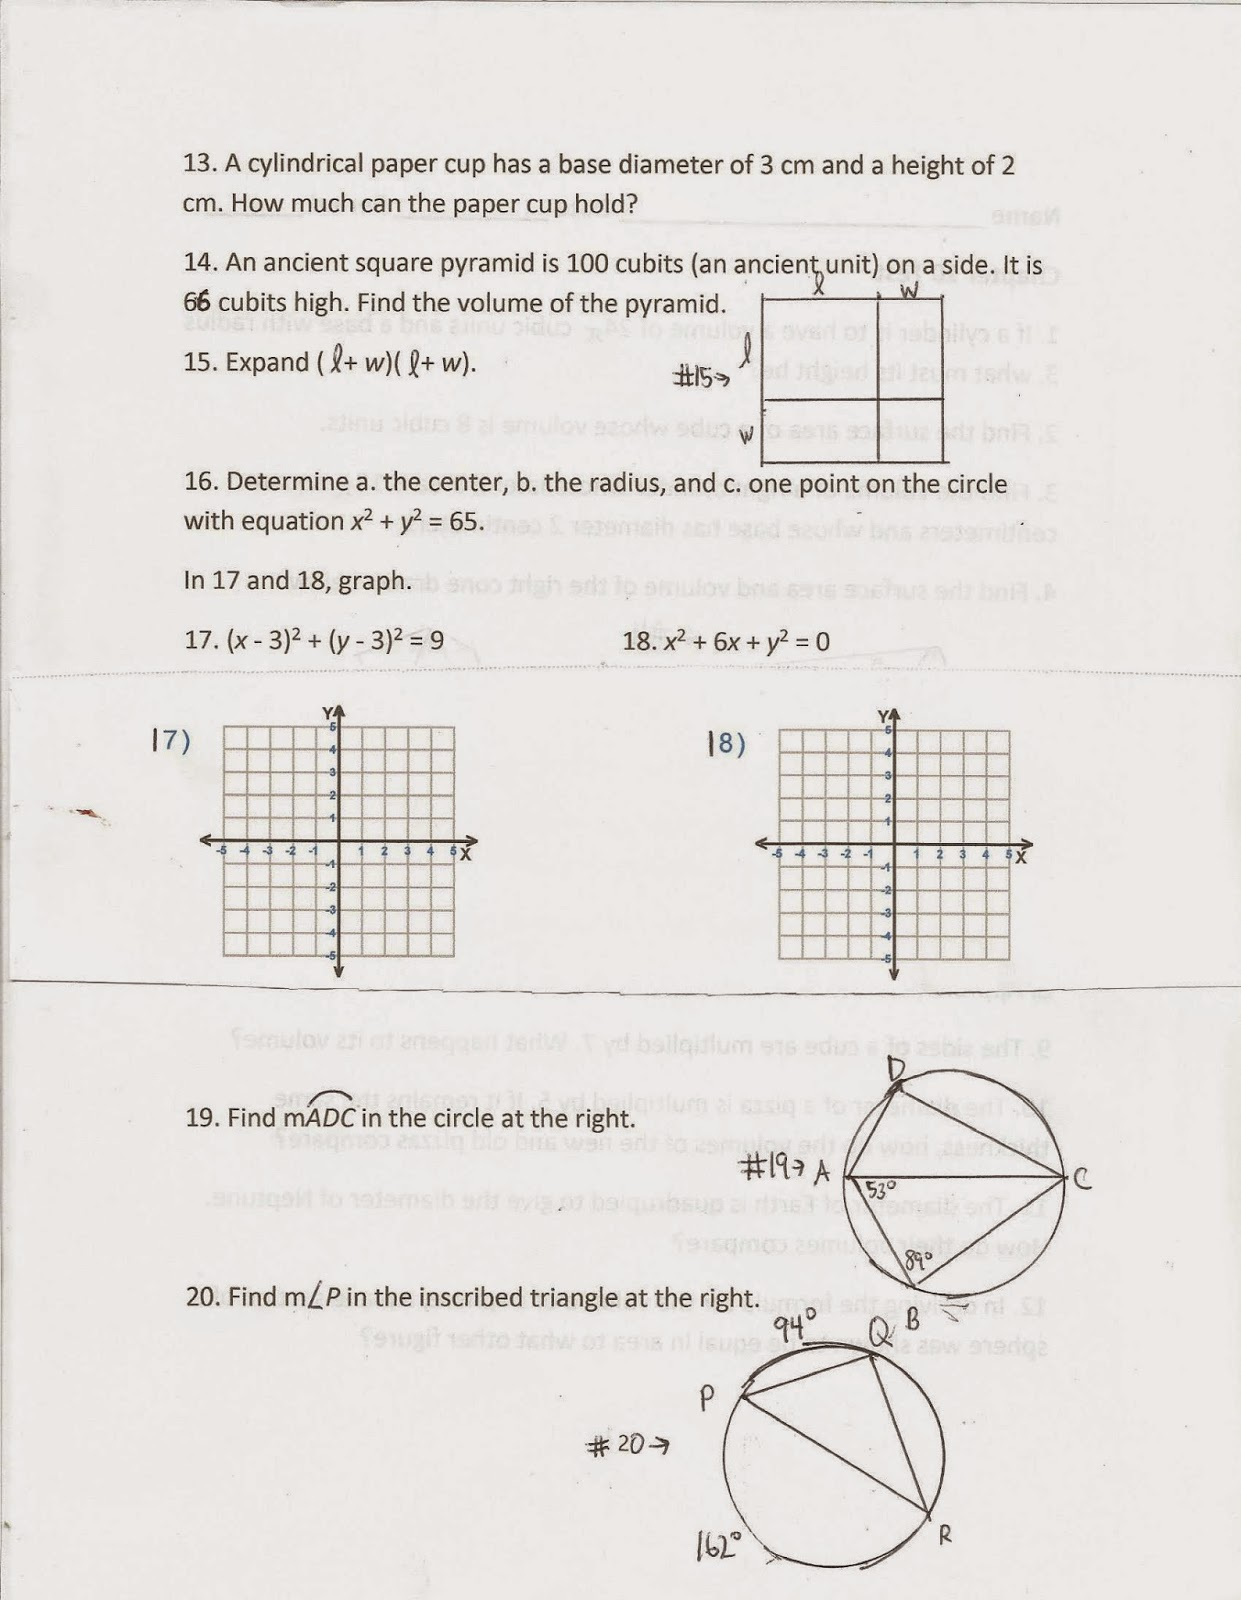 Geometry, Common Core Style: Chapter 10 Test (Day 144)